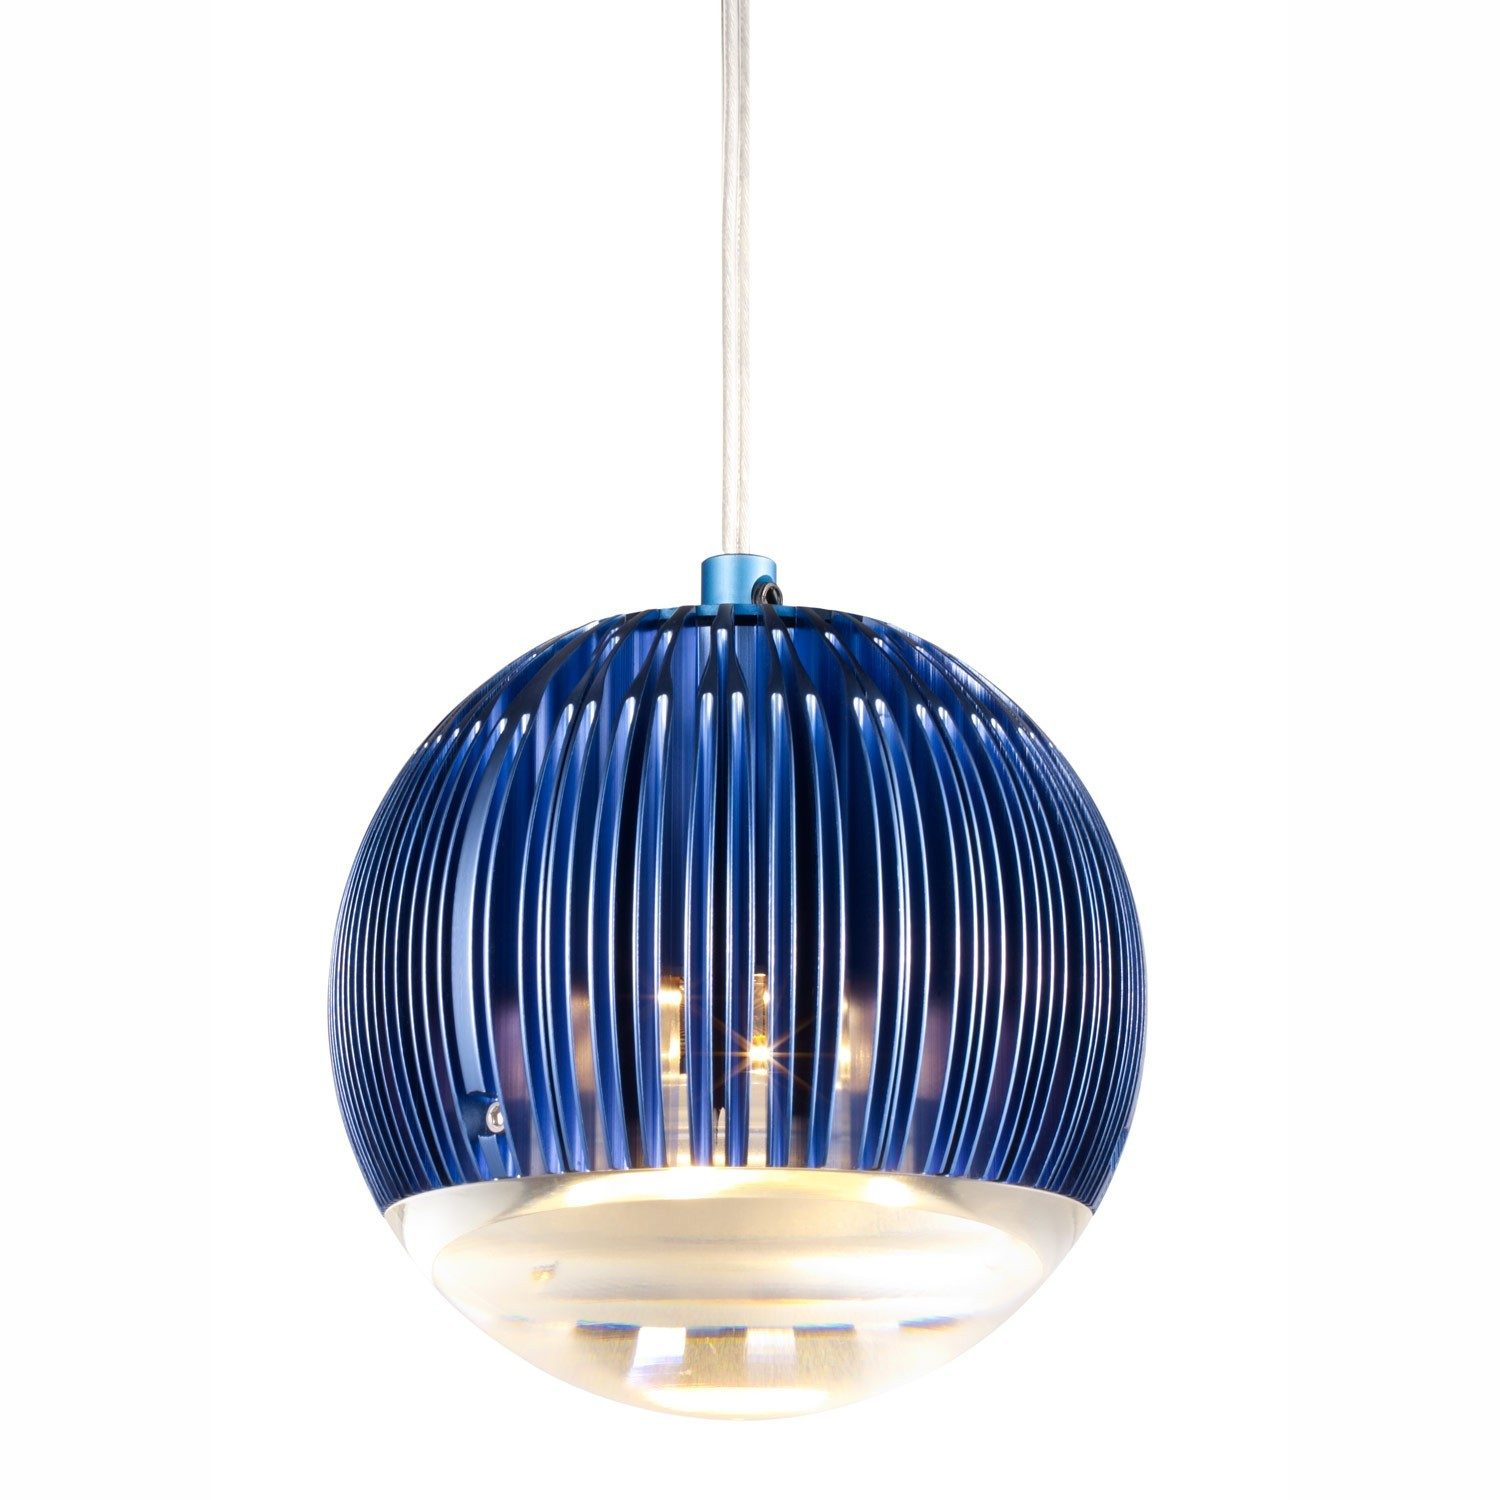 tom-dixon-fin-round-pendant-light-blue